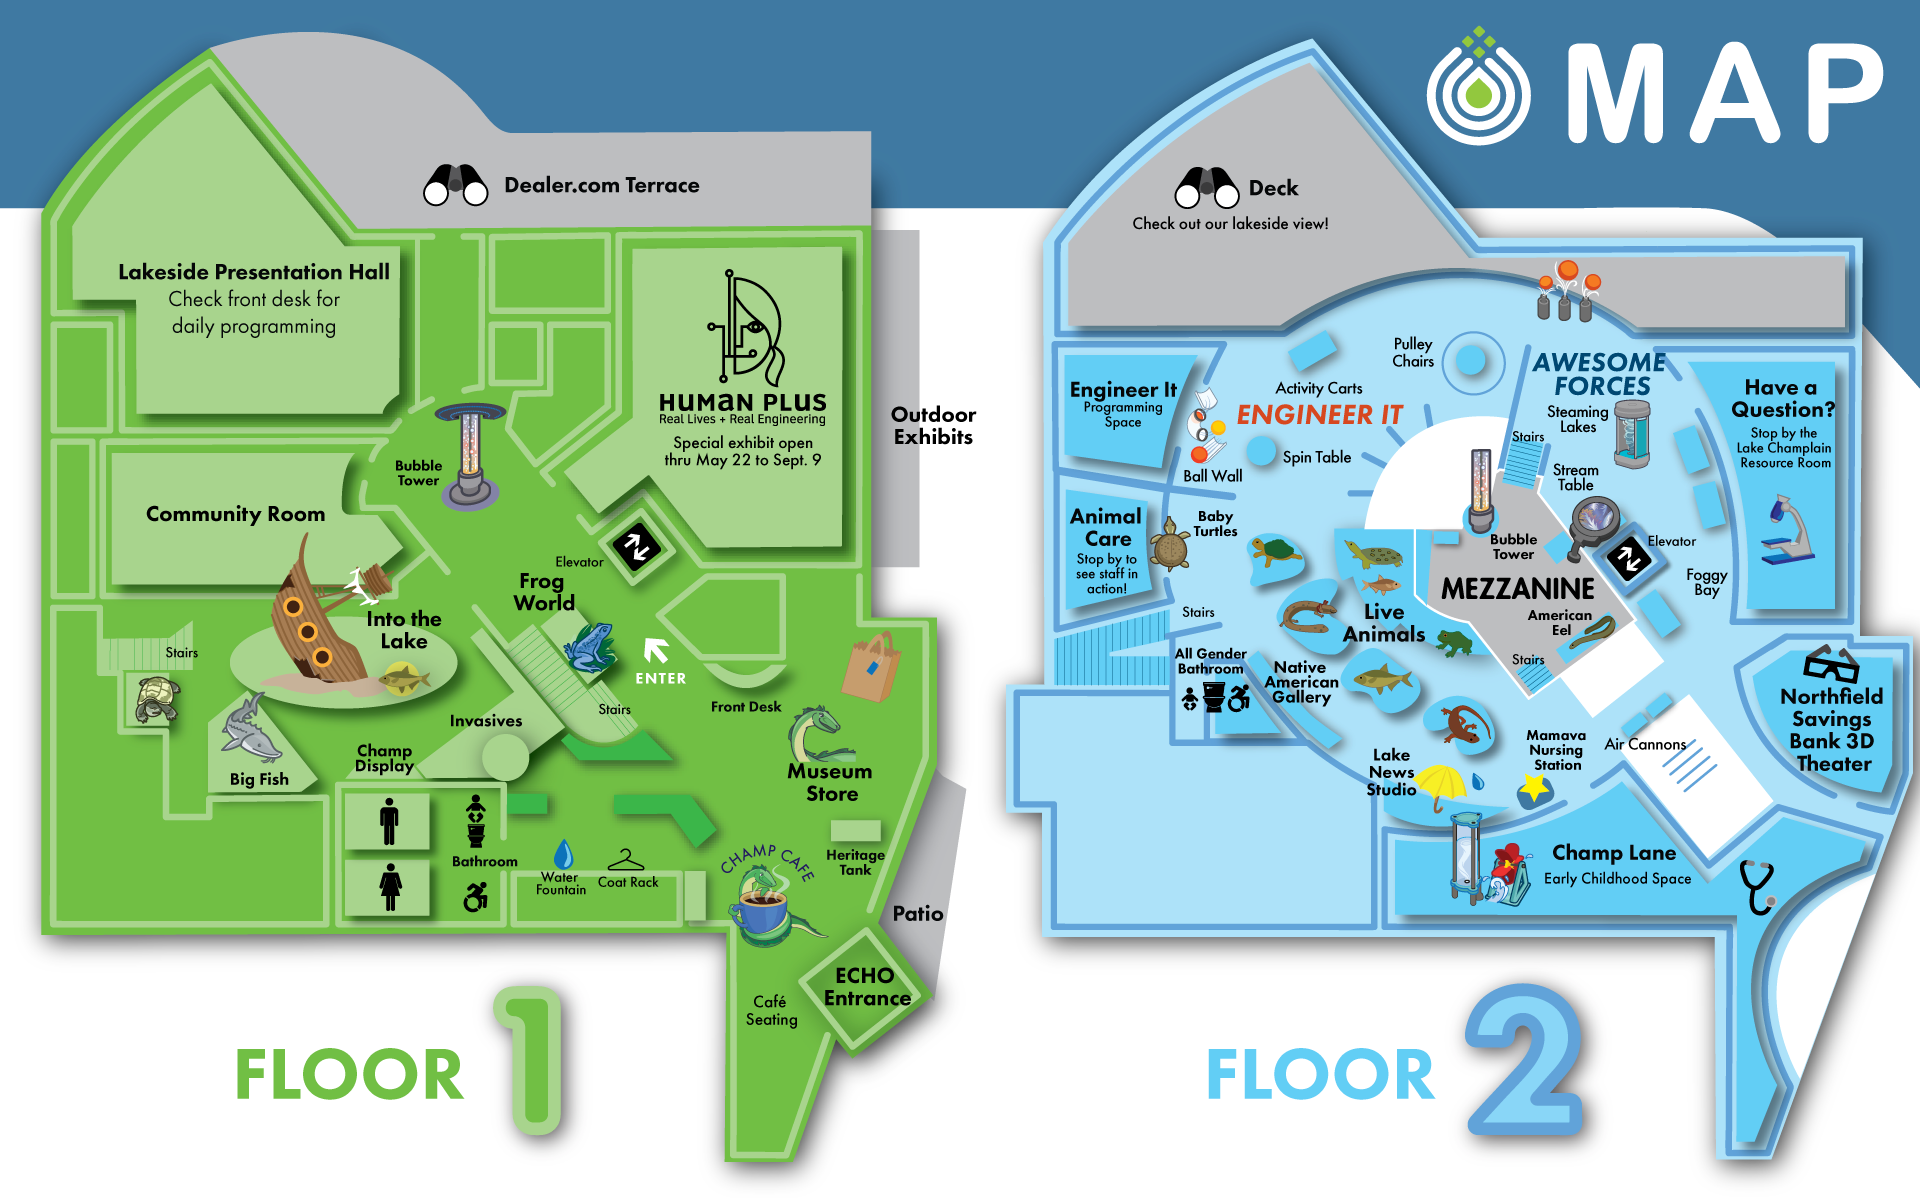 Map of Floor 1 are Floor 2 of ECHO. Downstairs: bathrooms, special exhibit, frog exhibit, museum store, Into the Lake exhibit. Upstairs: Awesome Forces, bathroom, nursing station, Engineer It, Animal exhibits, Champ Lane Early Learning, Resource Room, Outdoor deck. Mezzanine: eel exhibit.